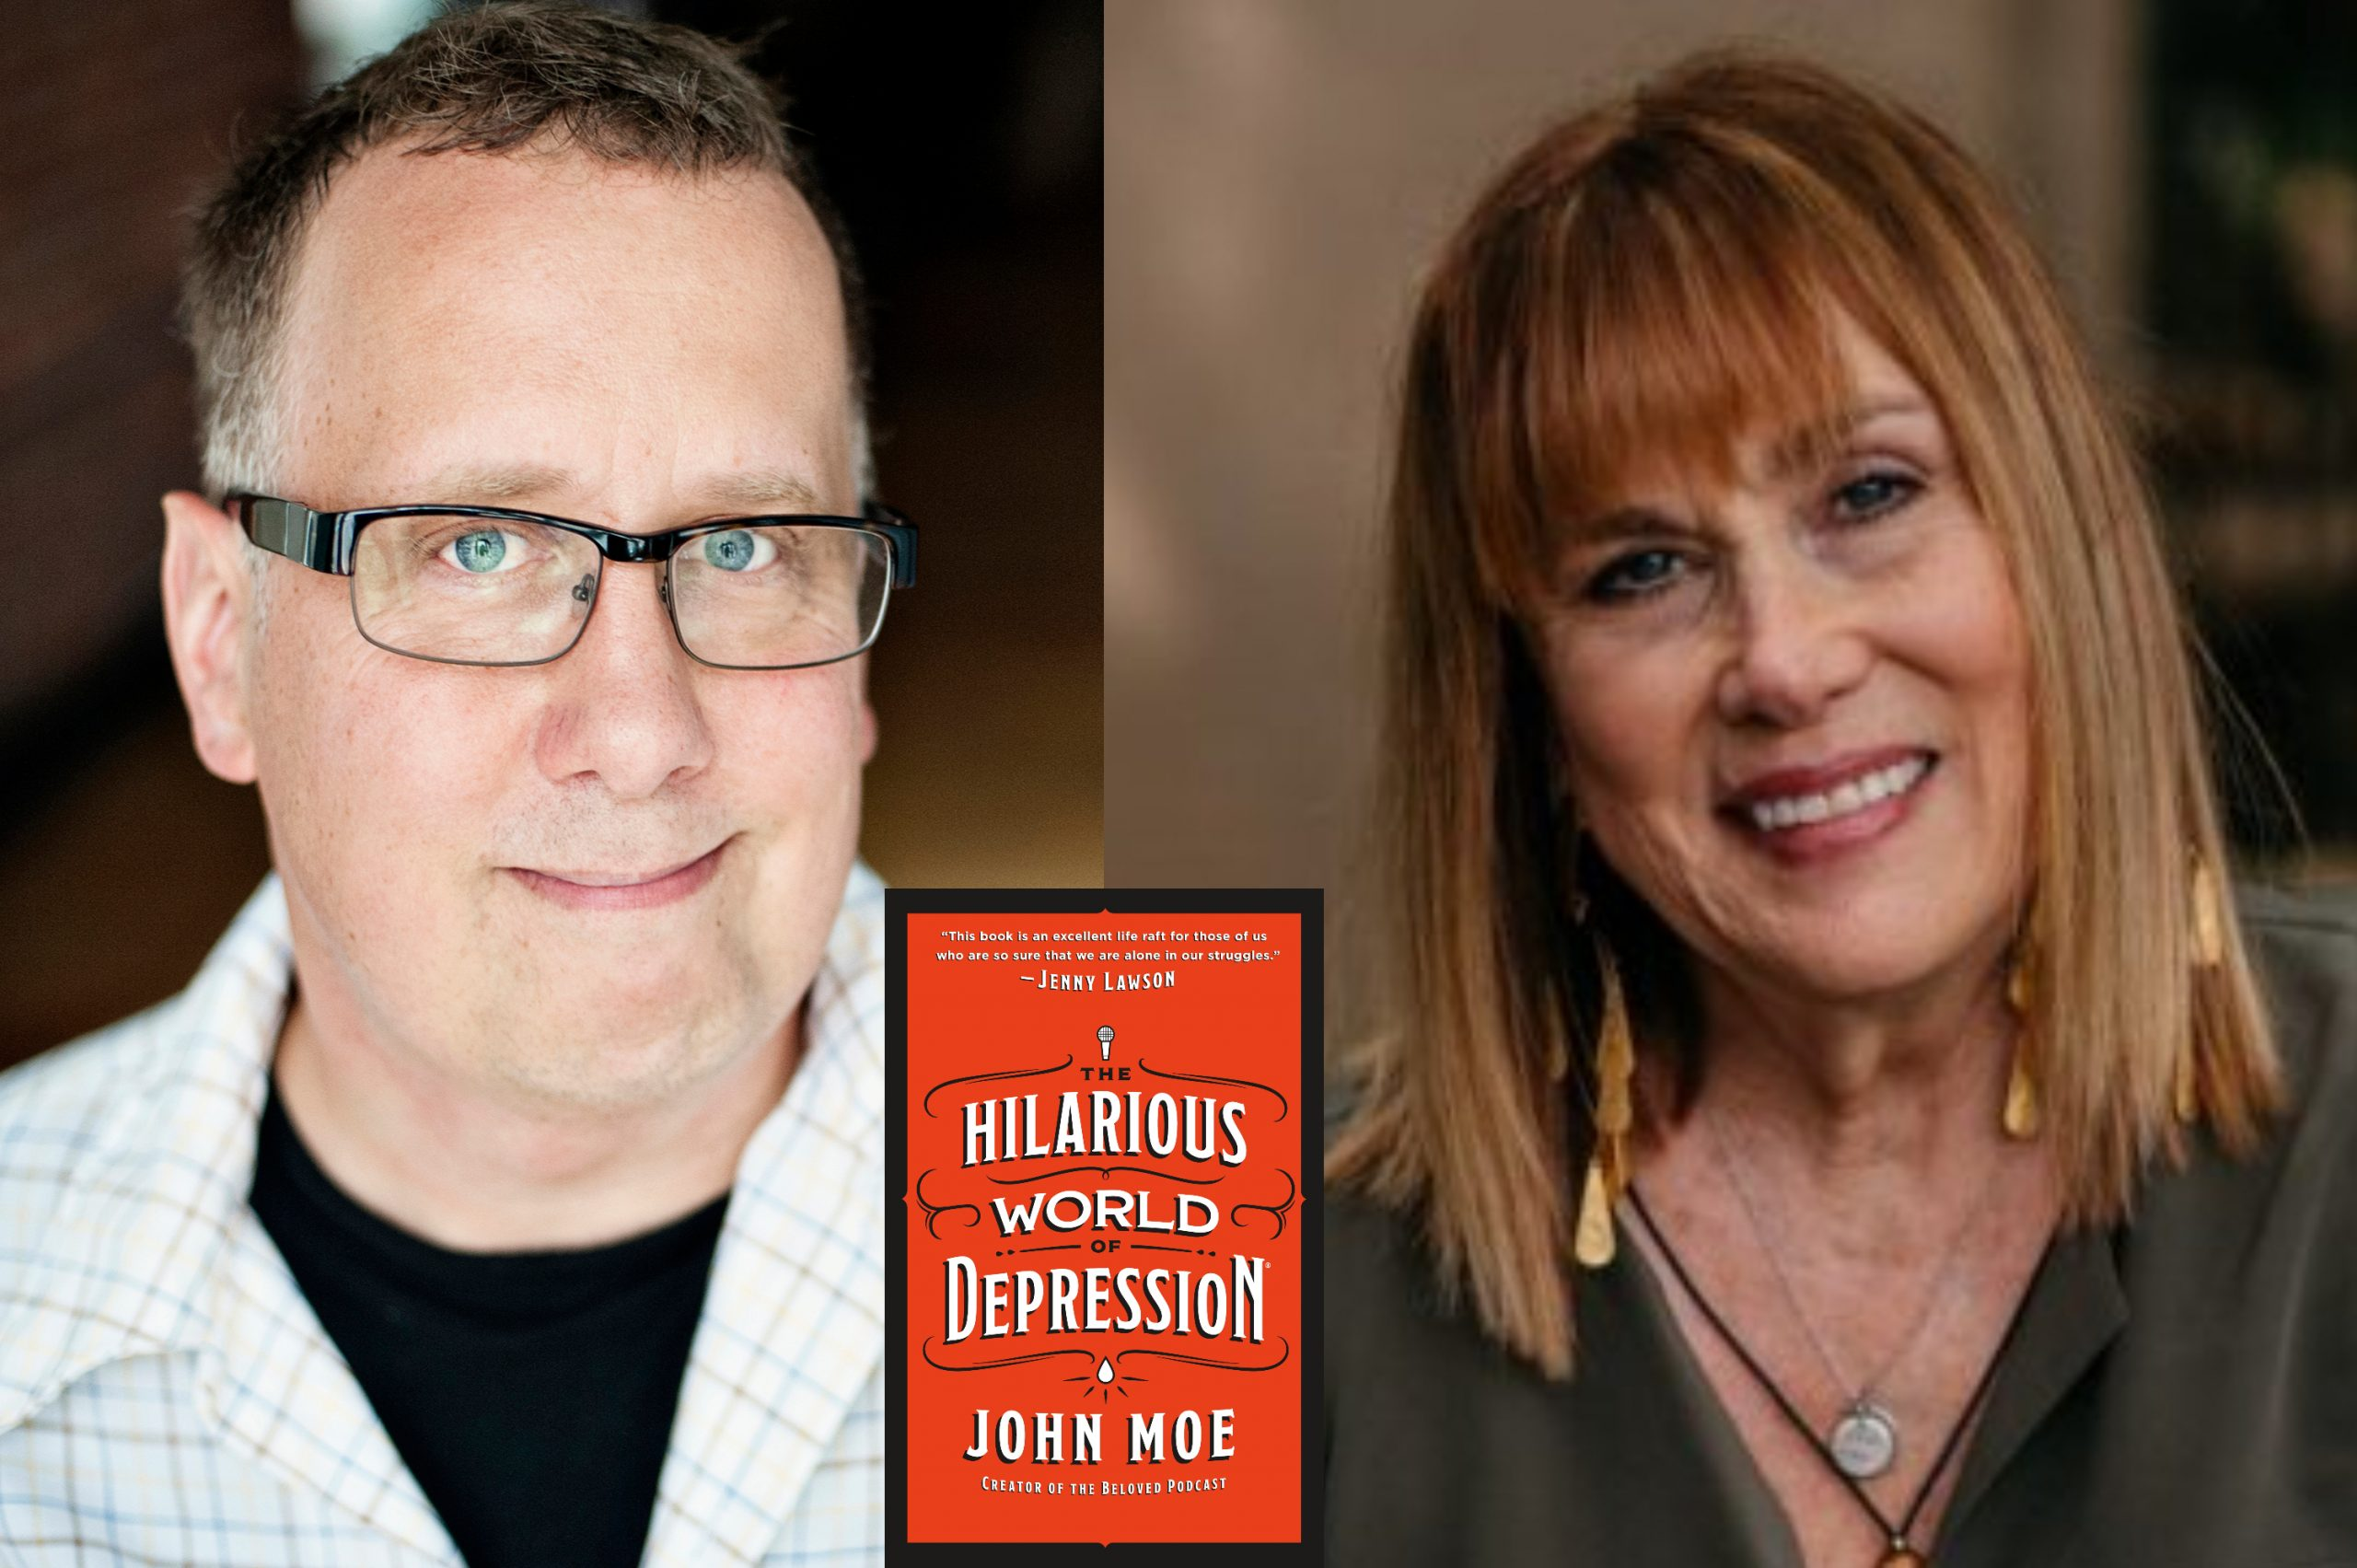 193 SelfWork: A Conversation with John Moe, author of The Hilarious World of Depression